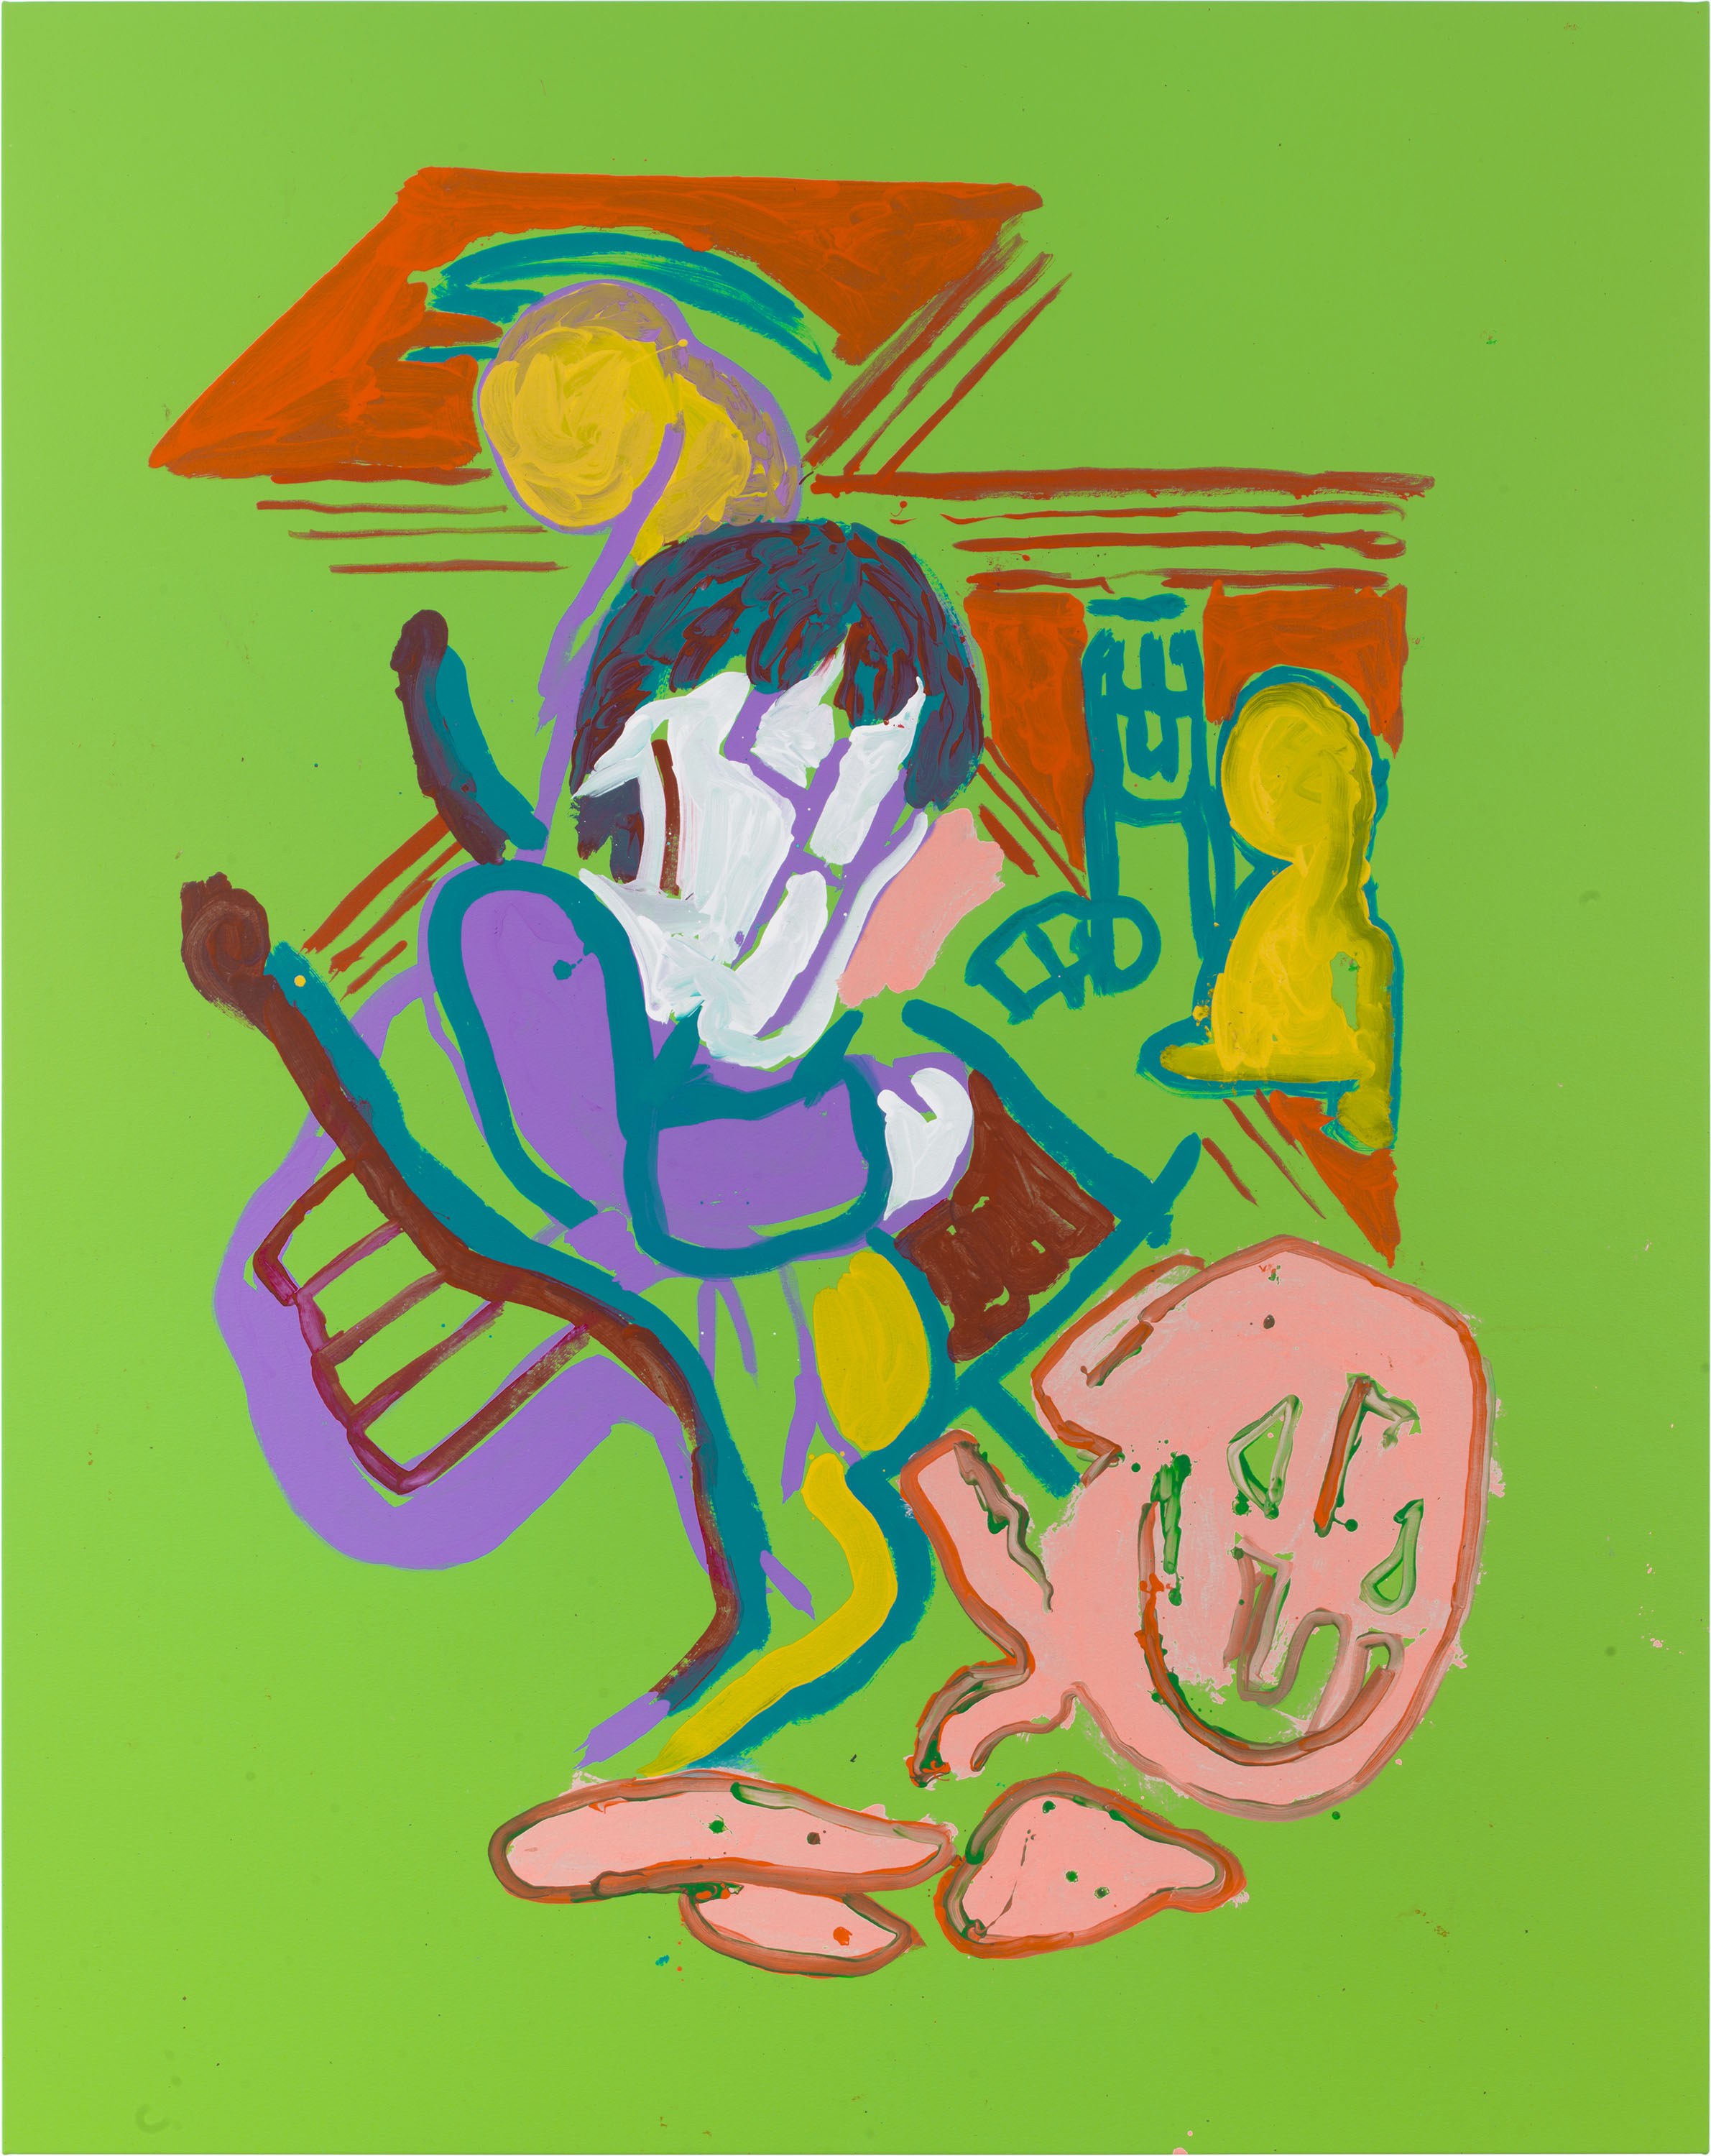 Drew Beattie  People on Green  2018 Acrylic on canvas 96 x 76 inches